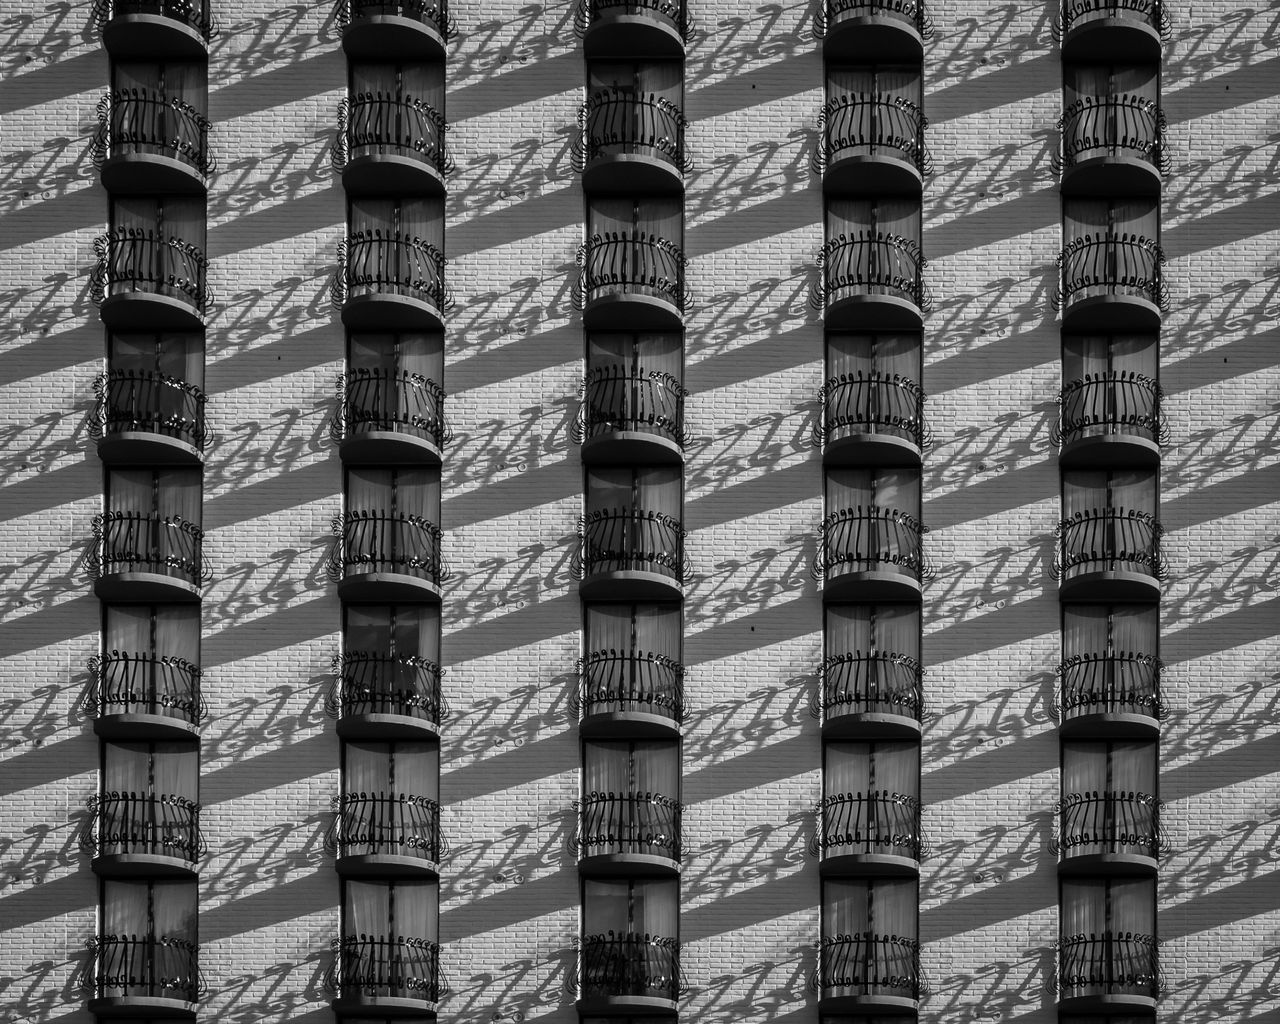 Abstract Architecture Backgrounds Balcony Building Building Exterior Built Structure Composition Contrast Copy Space Day Full Frame Low Angle View No People Outdoors Pattern Shadow